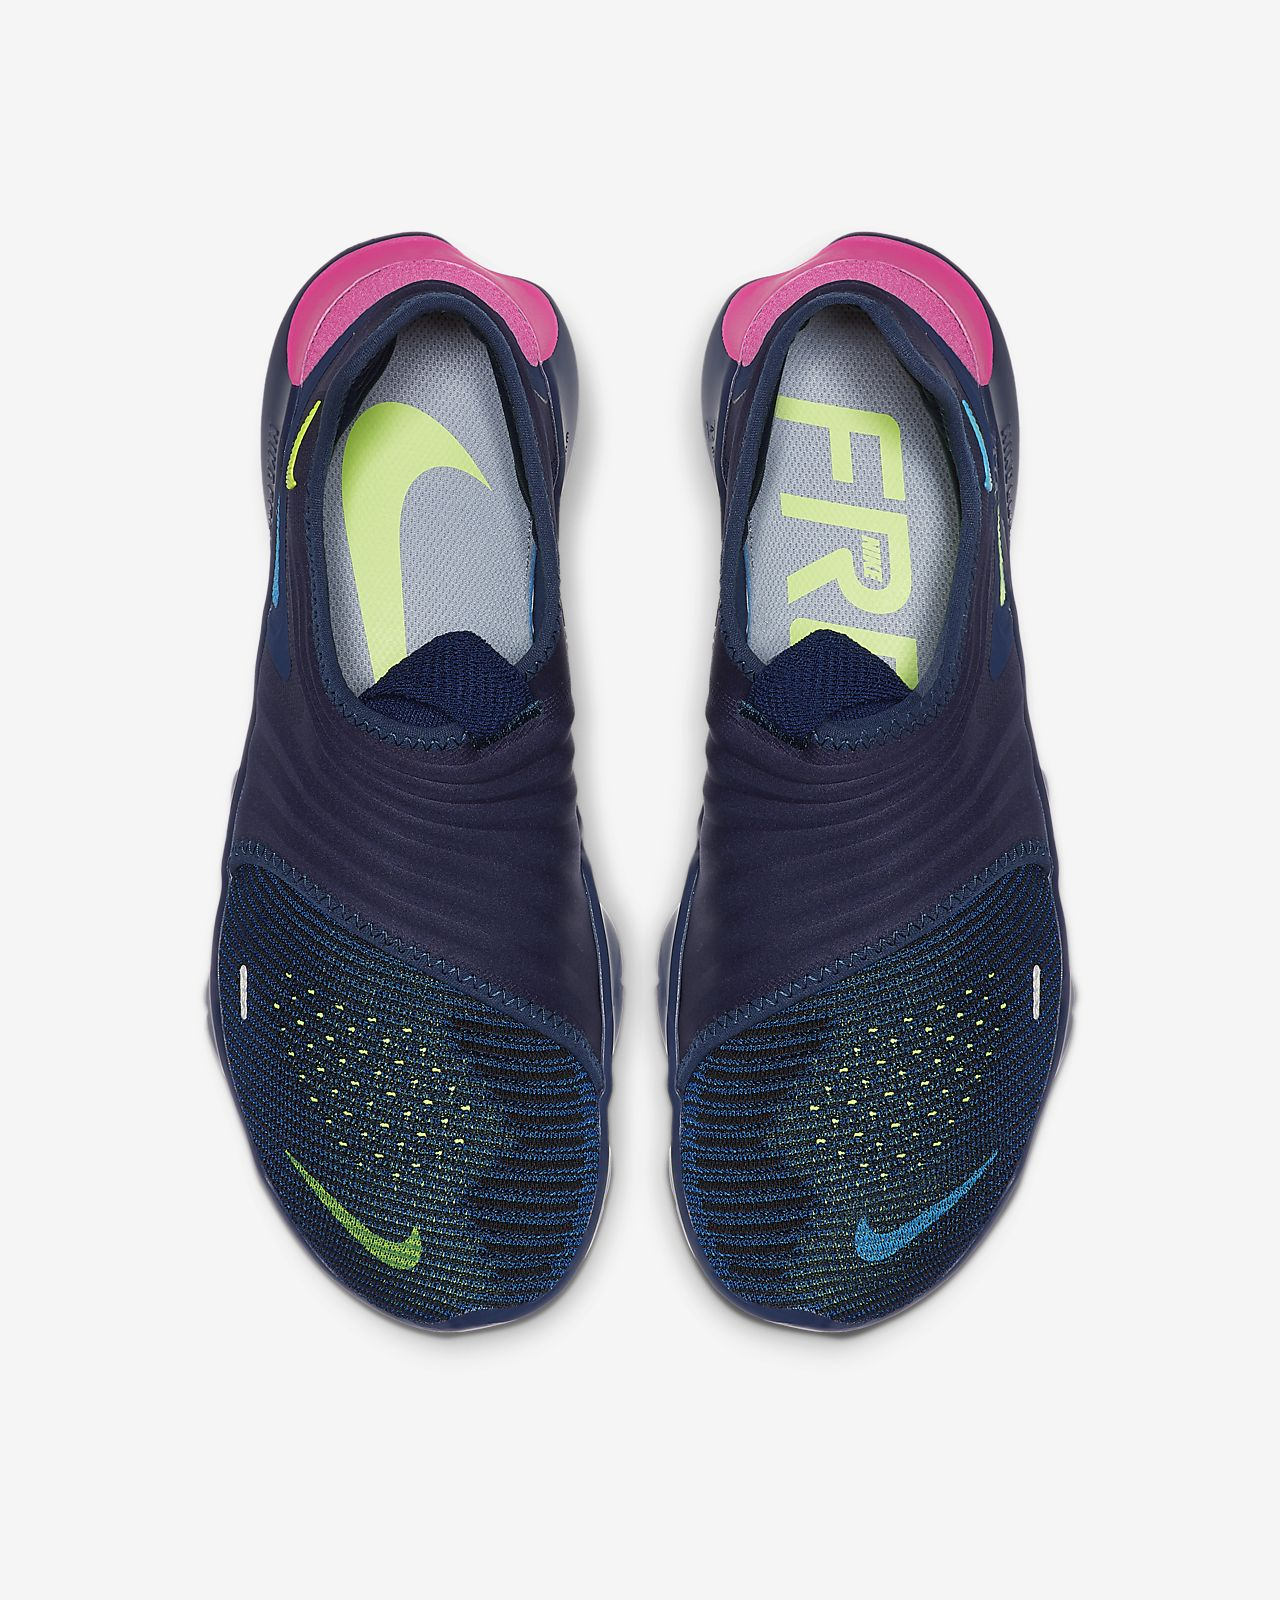 official photos f0375 9d1cb ... Nike Free RN Flyknit 3.0 Men s Running Shoe